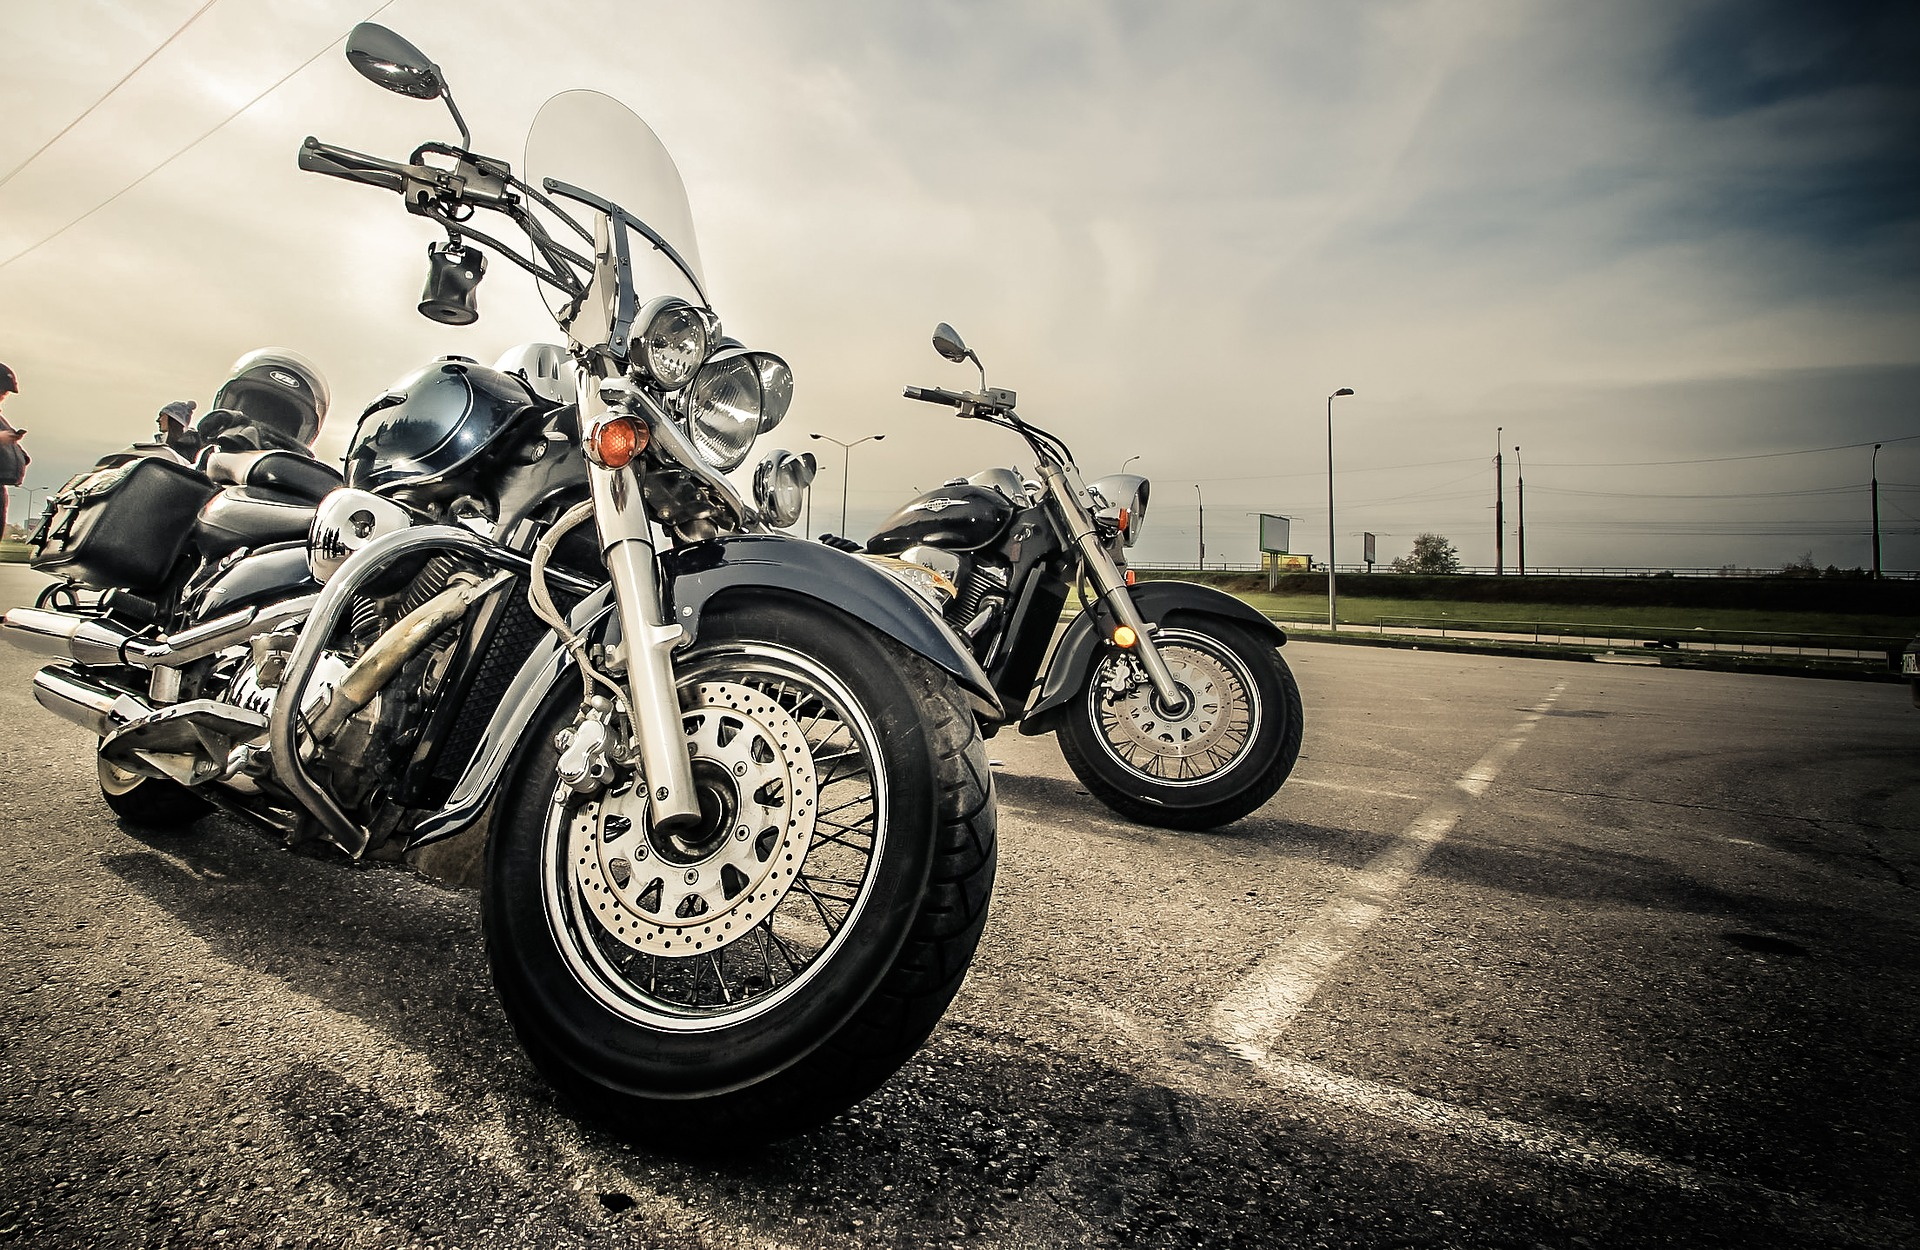 Motorcycles and Spring in the air